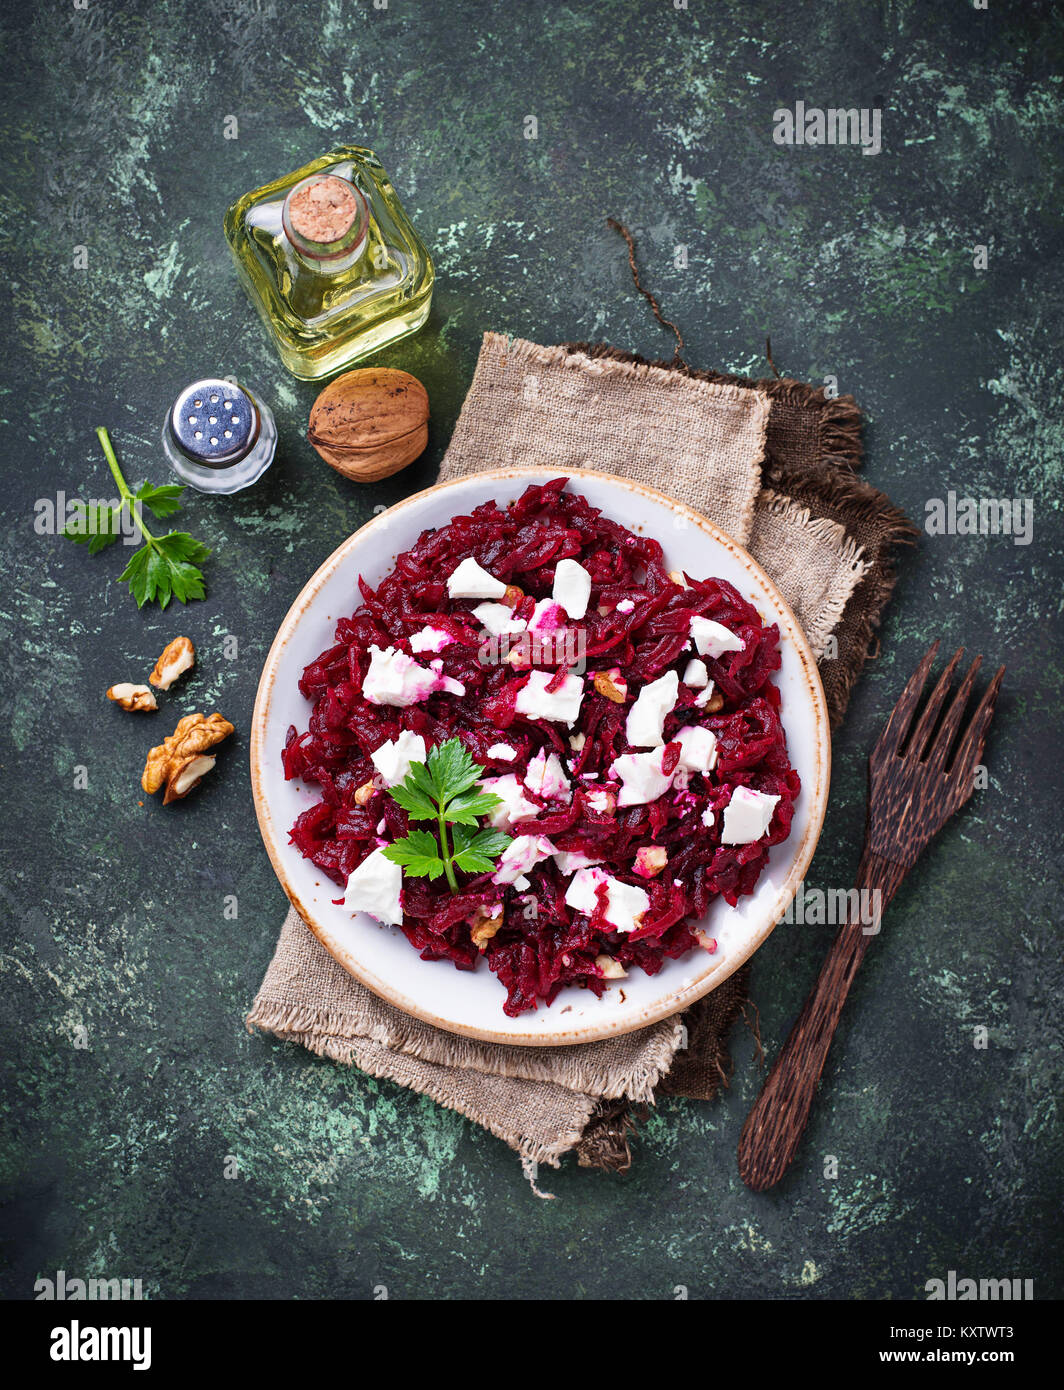 Healthy beetroot salad with feta and walnuts - Stock Image